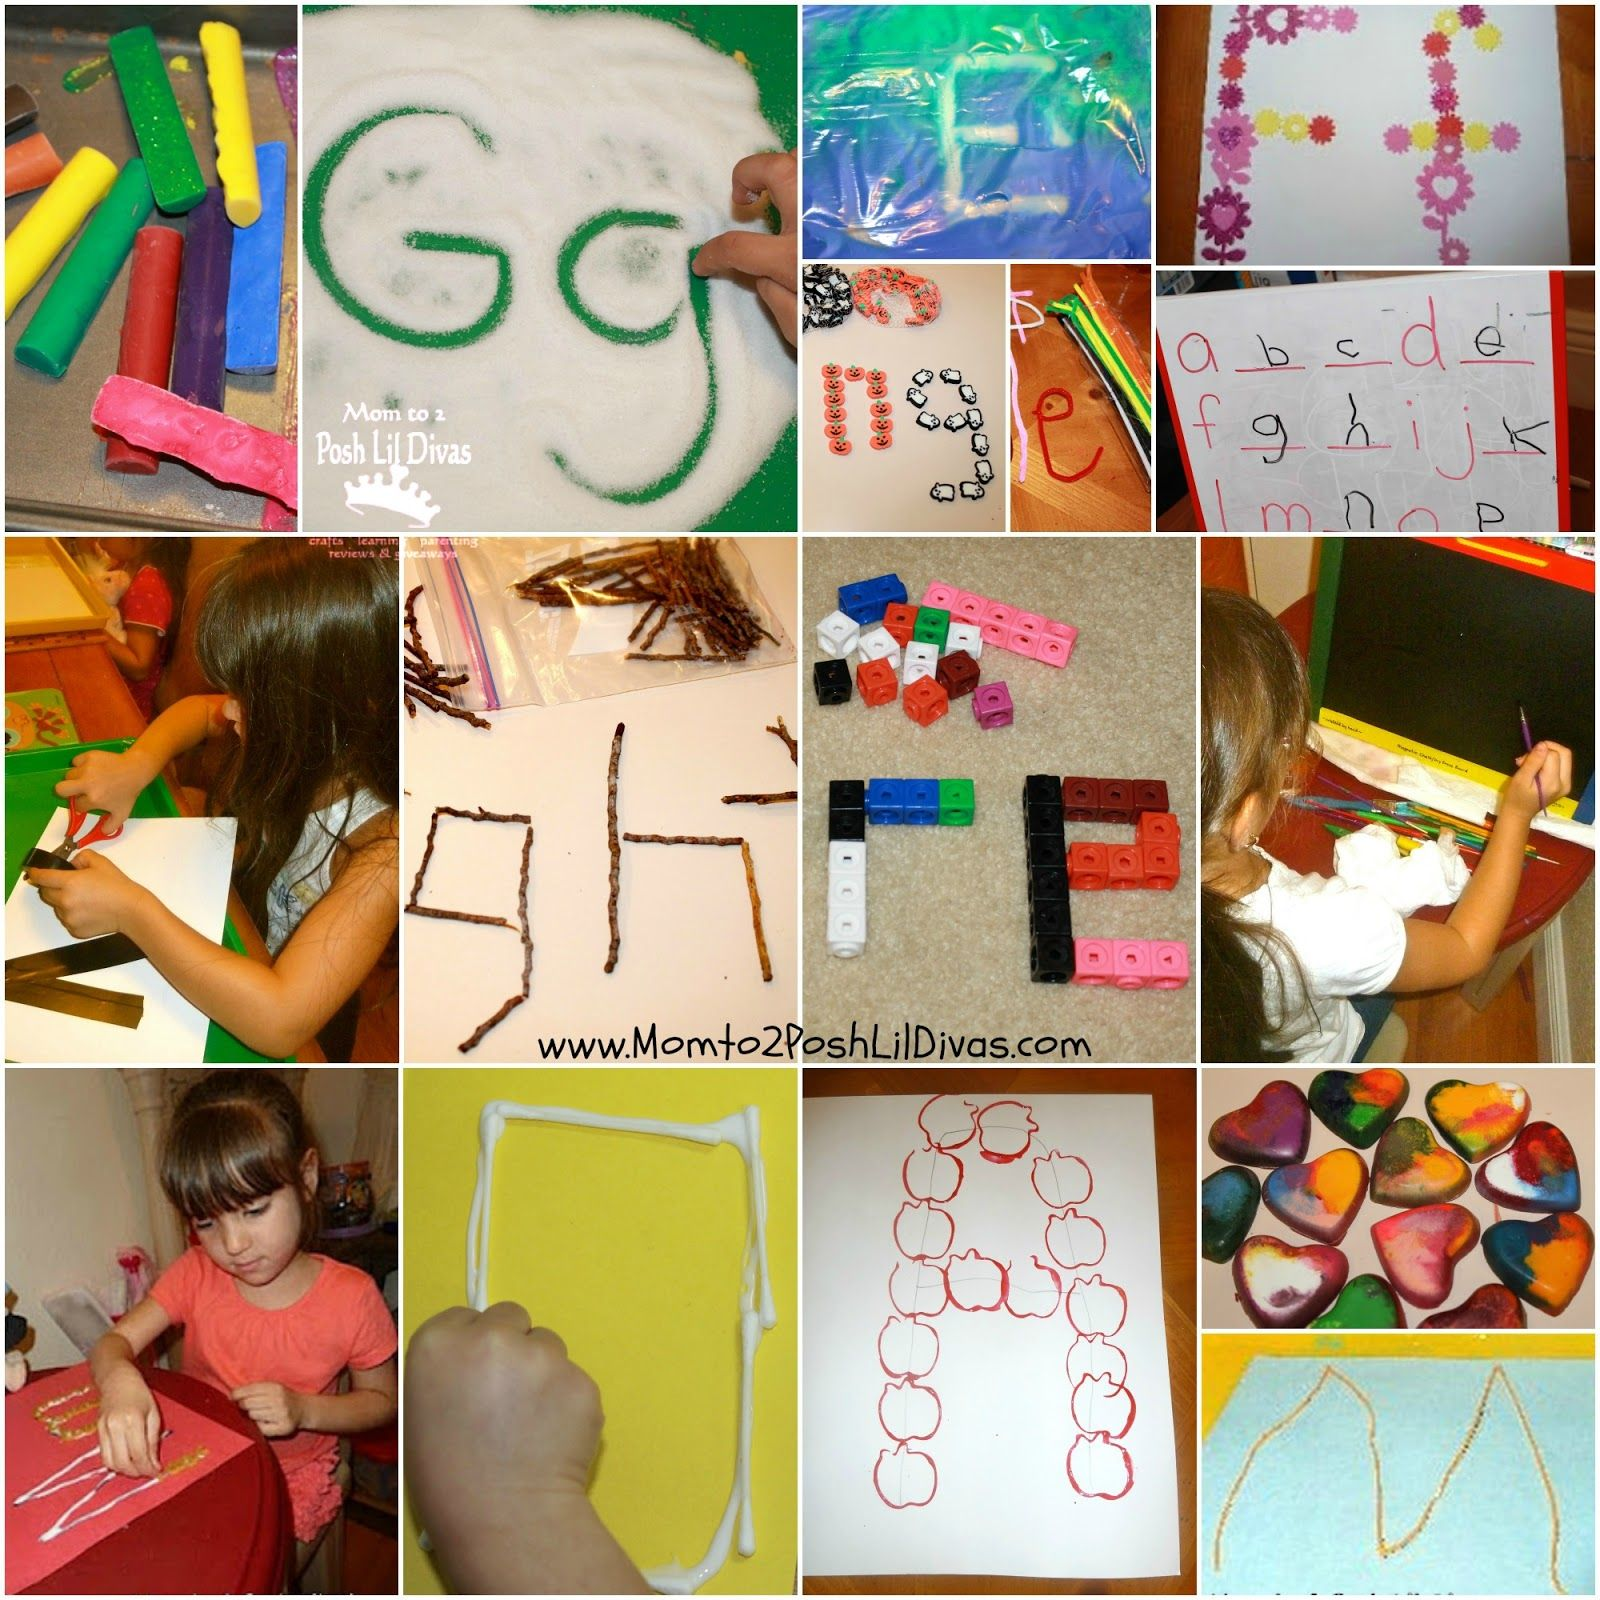 letter formation poems%0A Mom to   Posh Lil Divas     Ways to Make Handwriting Practice FUN for Kids